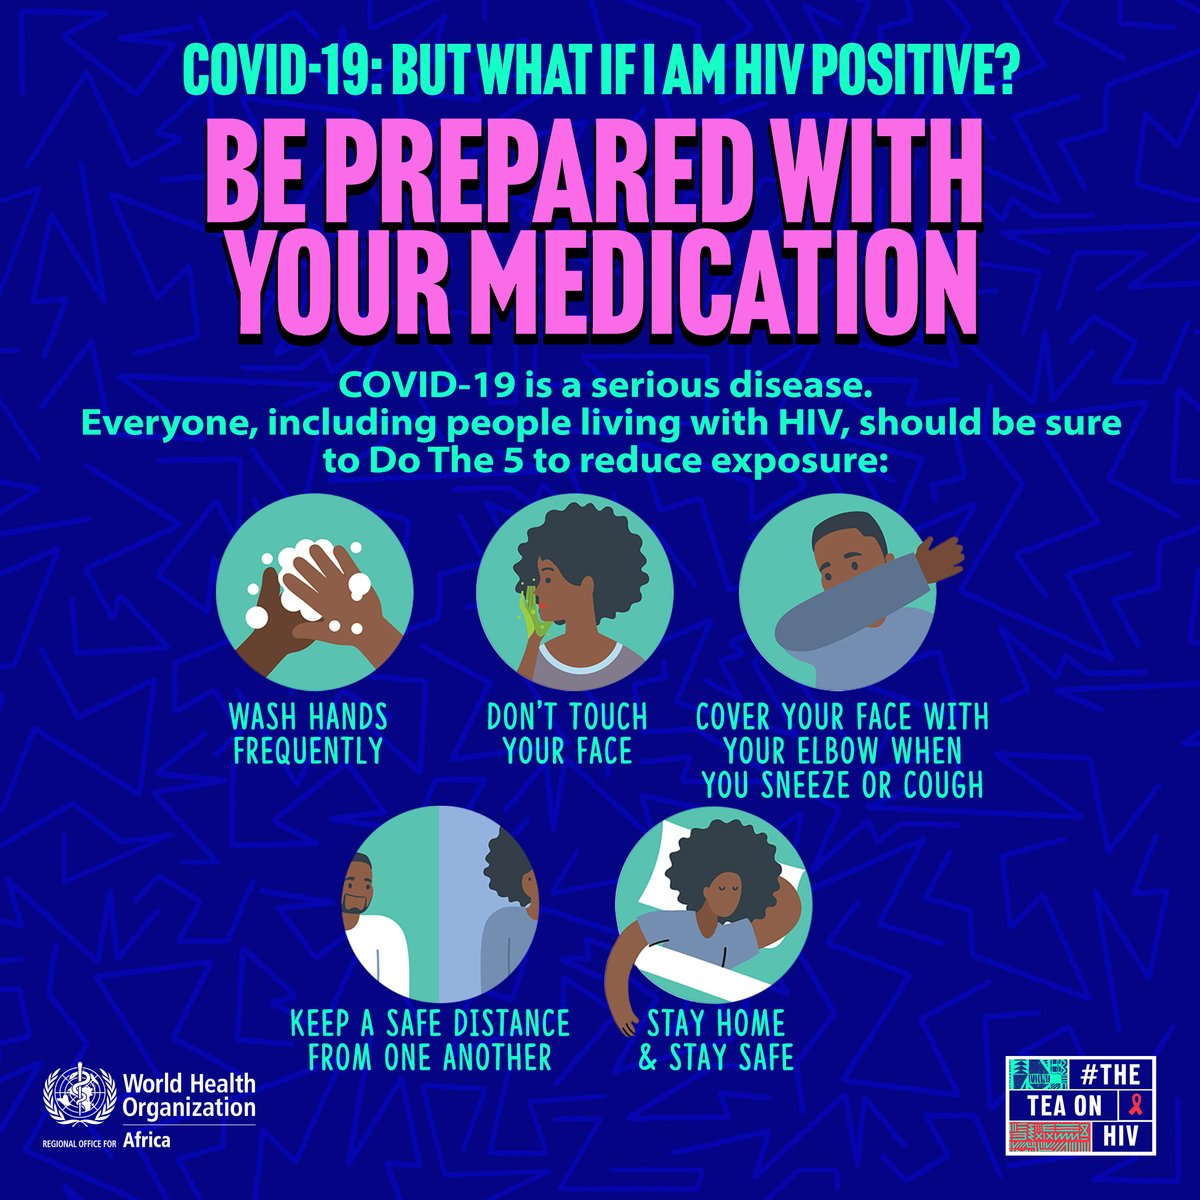 Keep at least a 90 day supply of your medication on hand, not to risk running out during #COVID19 lockdown.   Get your local pharmacy's contact number or inform a friend about how to arrange for more medication to be delivered if you get sick. #AIDS2020Virtual https://t.co/JJHw7hXc7q